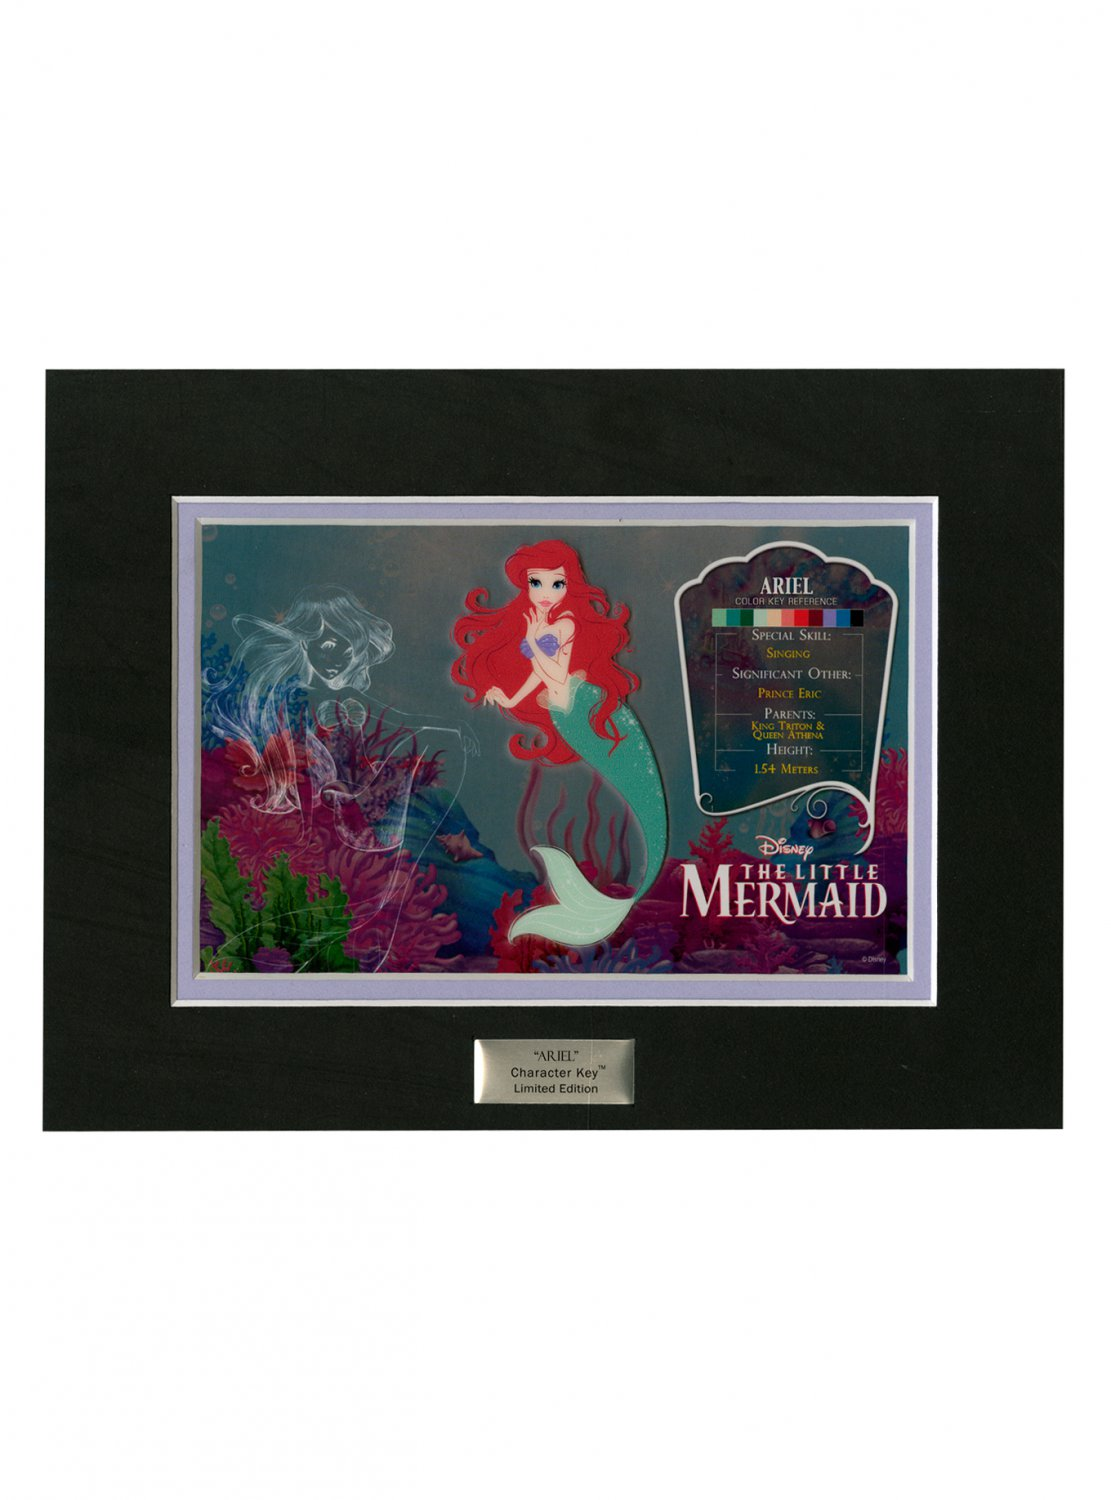 Disney The Little Mermaid Ariel Hot Topic Variant Edition Character Key by Acme Archives